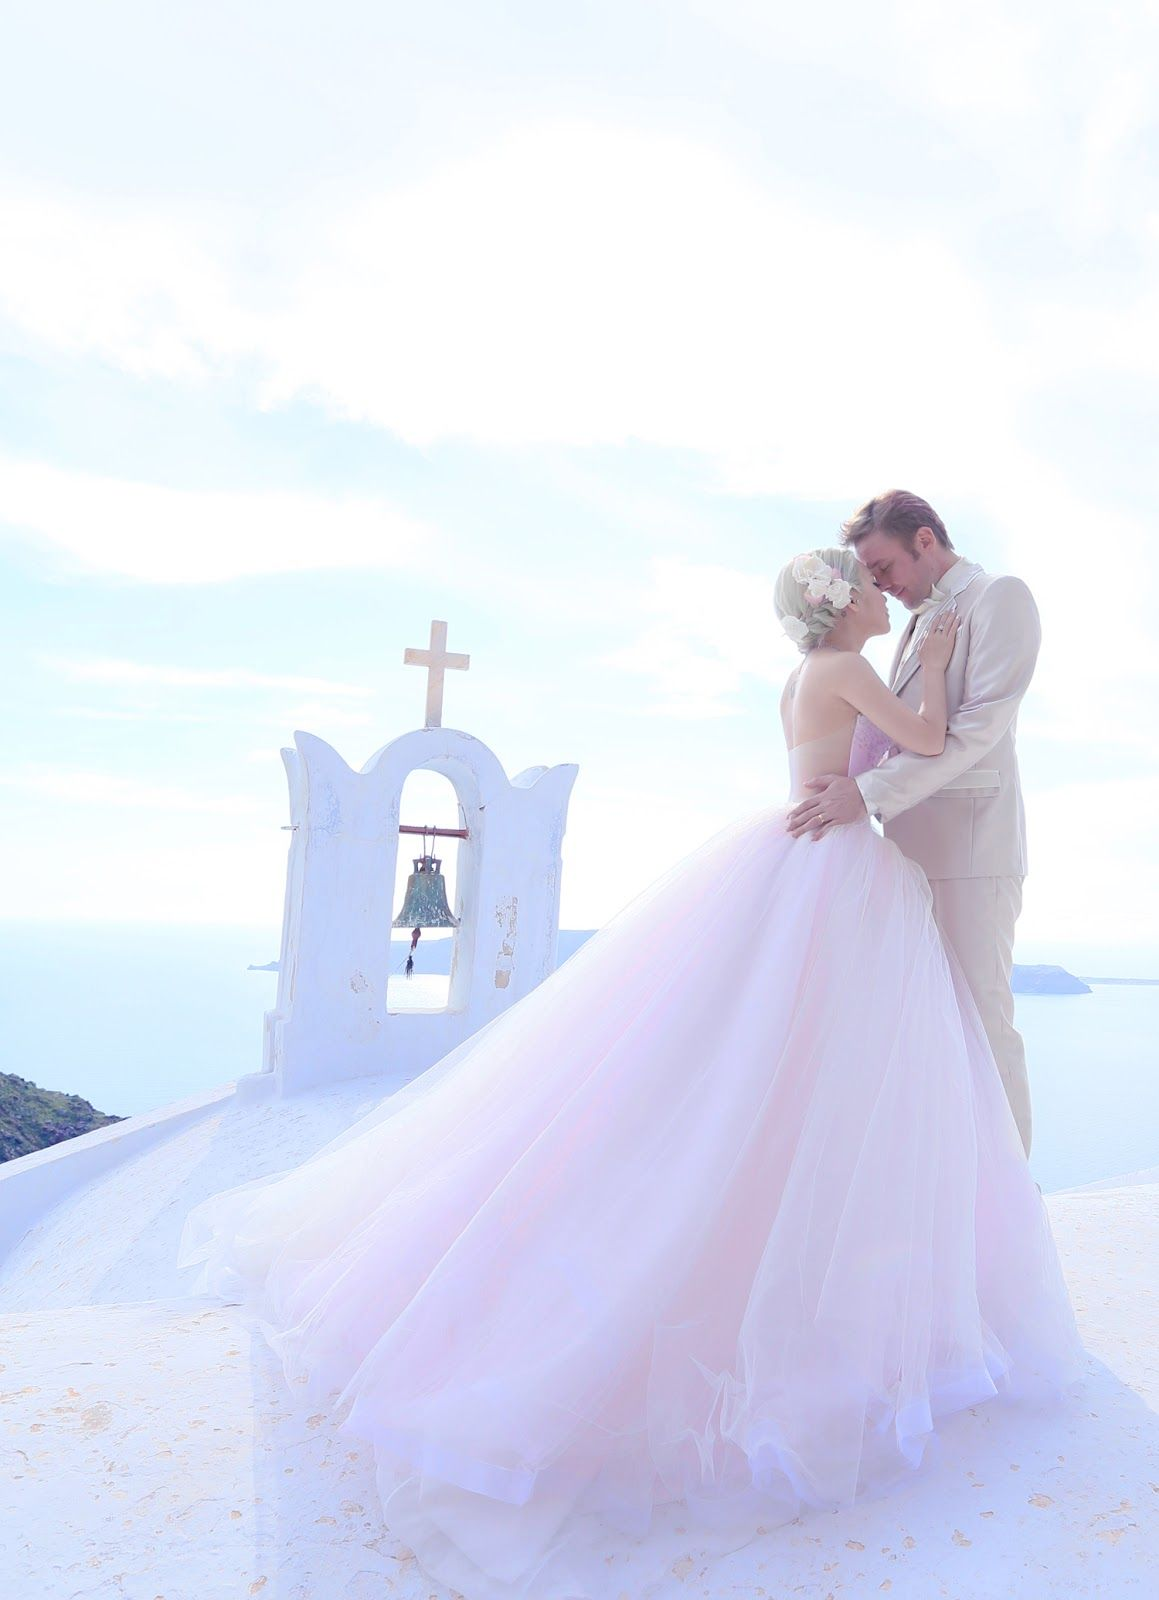 Xiaxue S Amazing Wedding Shoot With Sunrise Greece In Santorini Xiaxue Blogspot Com Sunrise Wedding Greece Wedding Greek Islands Wedding